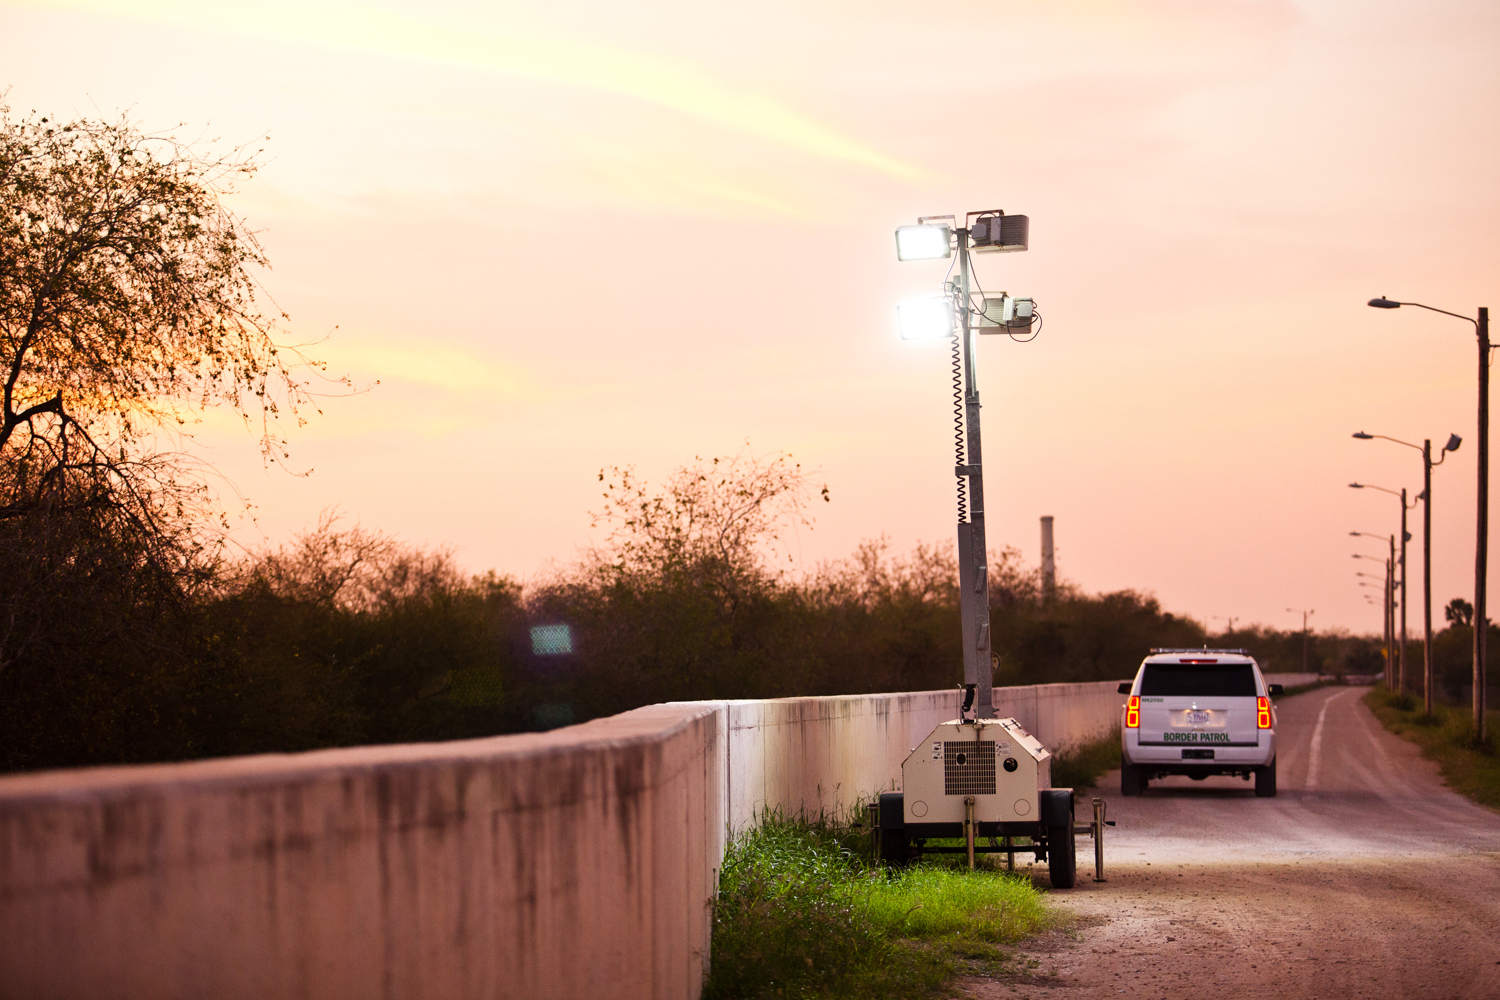 At sunset, a Customs and Border Patrol agent places noisy, generator-powered floodlights along a levee that ties into a segment of border fence in Hidalgo, Texas.